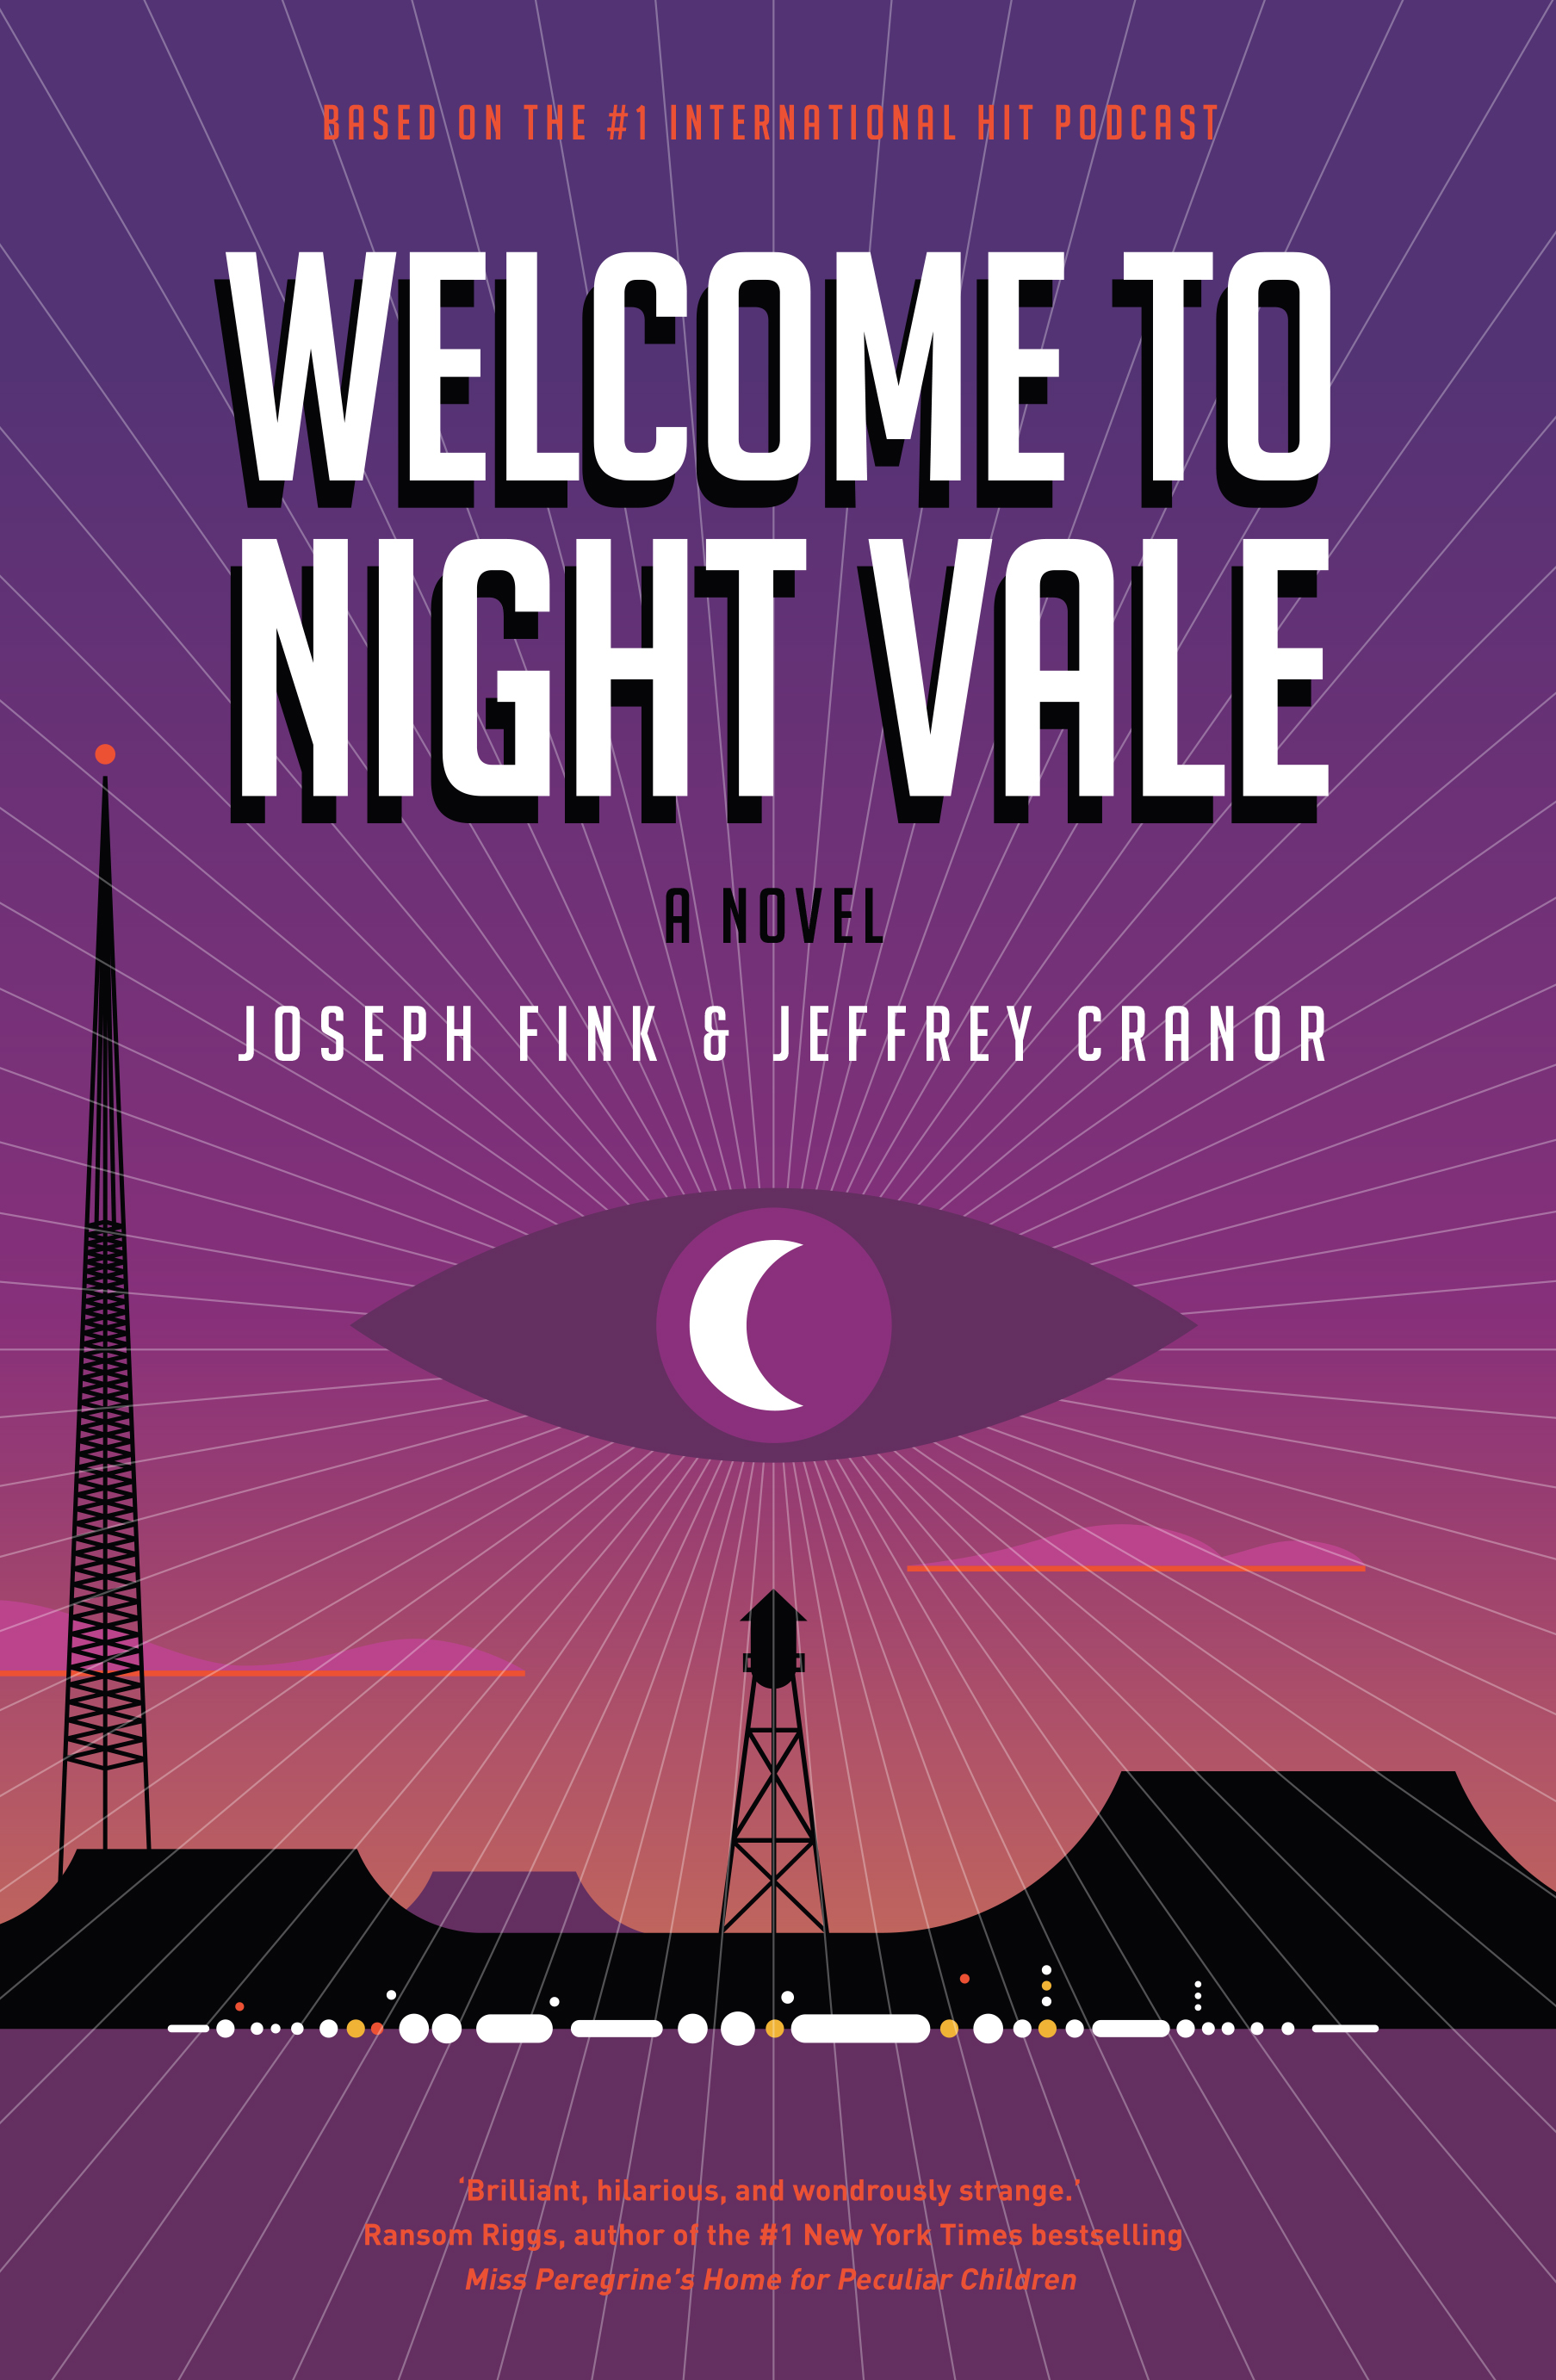 https://i0.wp.com/www.orbitbooks.net/wp-content/uploads/2015/07/Night-Vale-Final-UK-cover.jpg